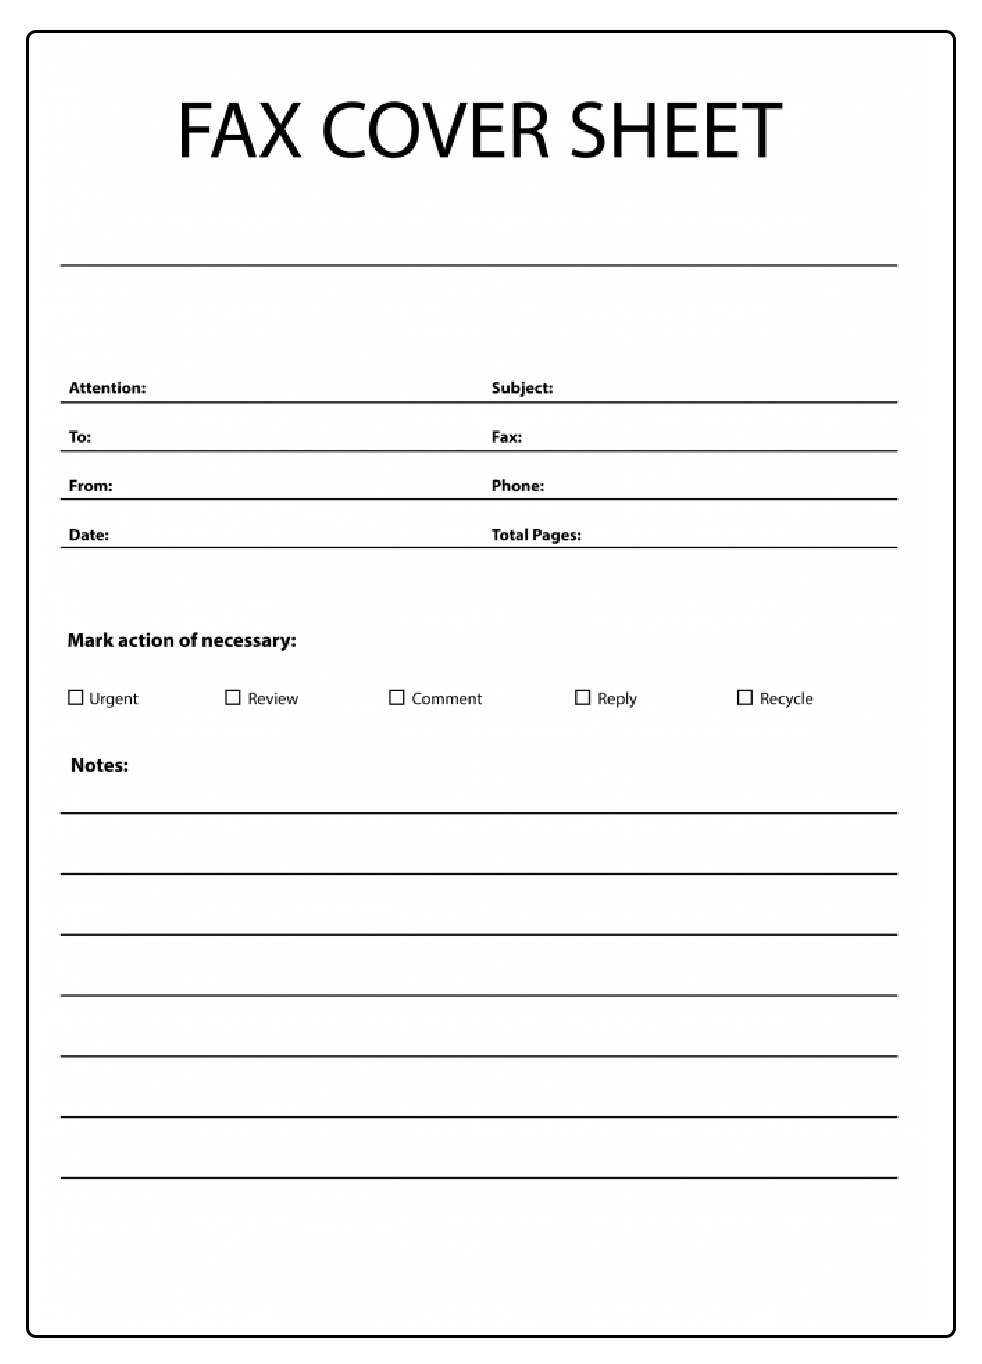 Basic Fax Cover Sheet PDF